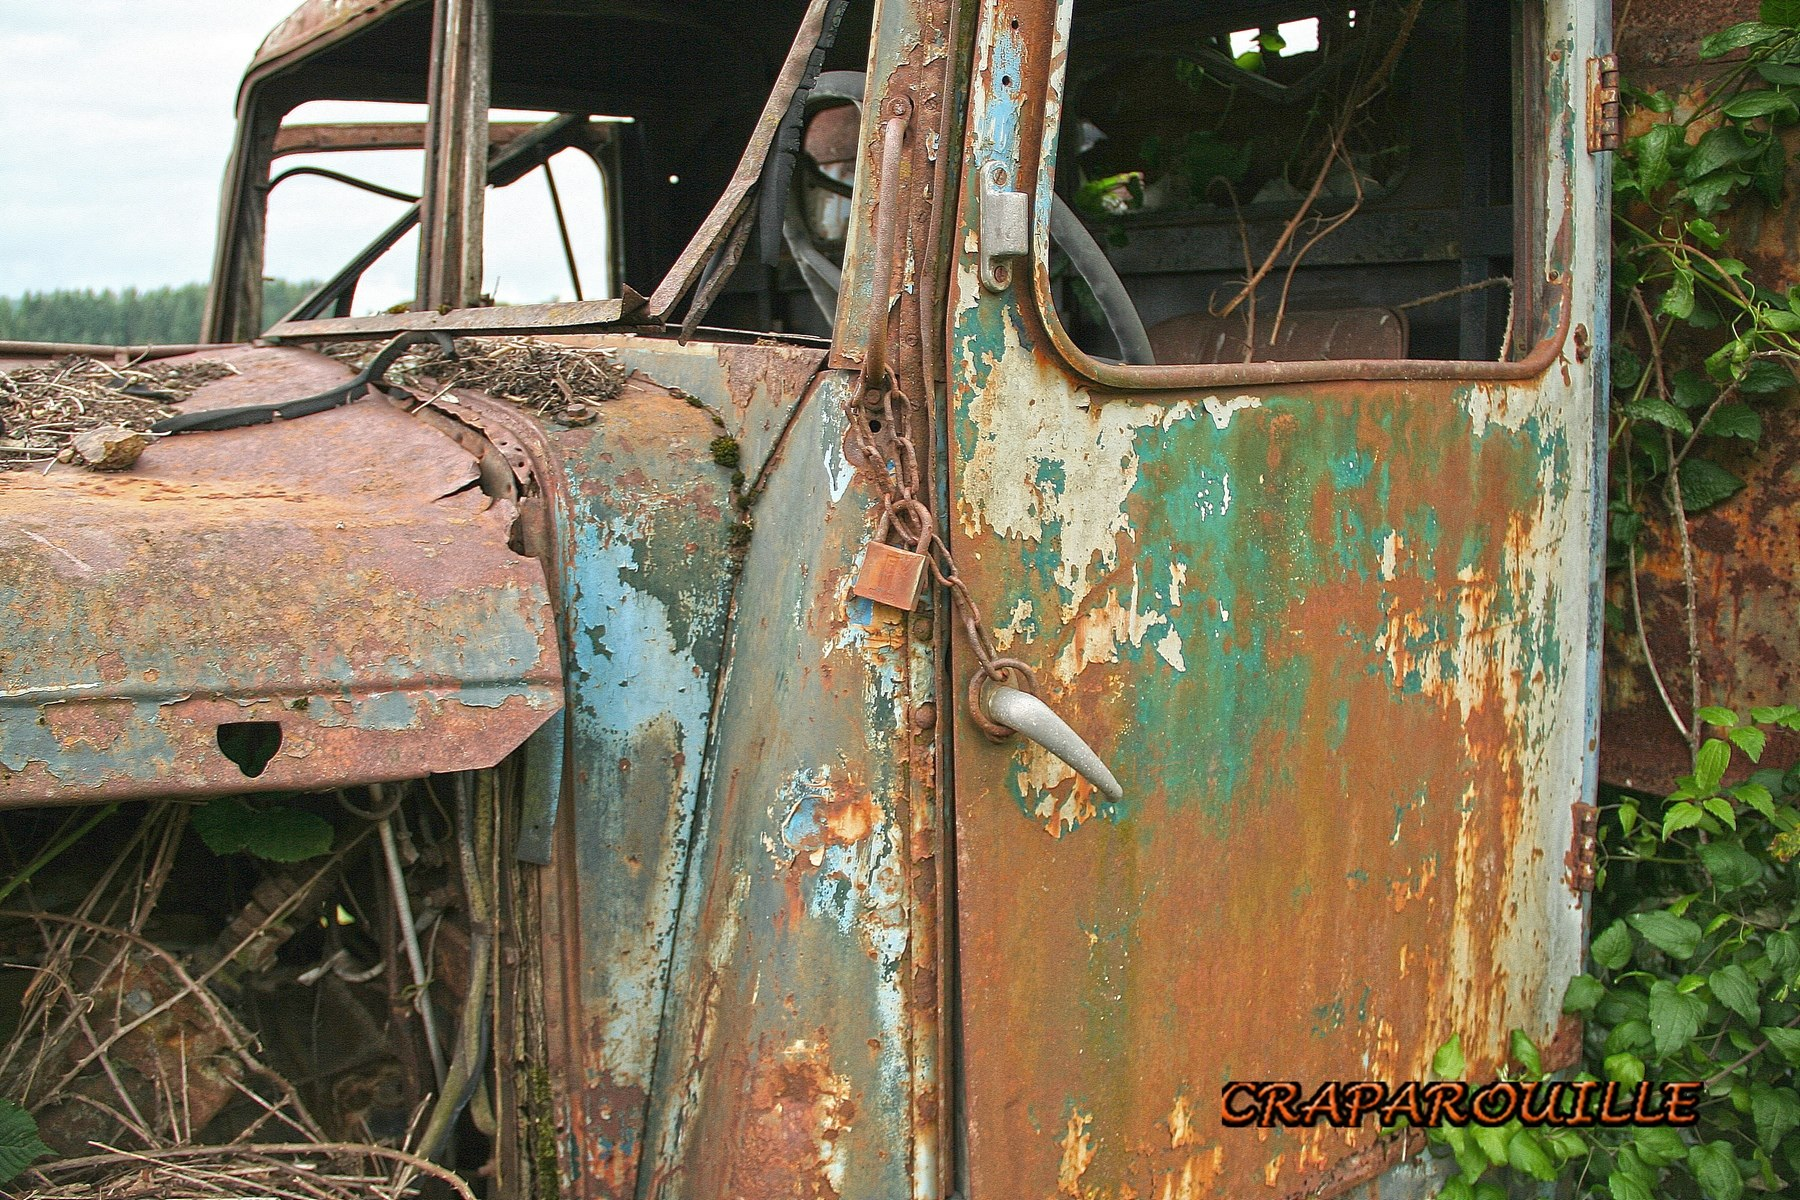 Photography-Diamonds-in-Rust-Craparouille-104